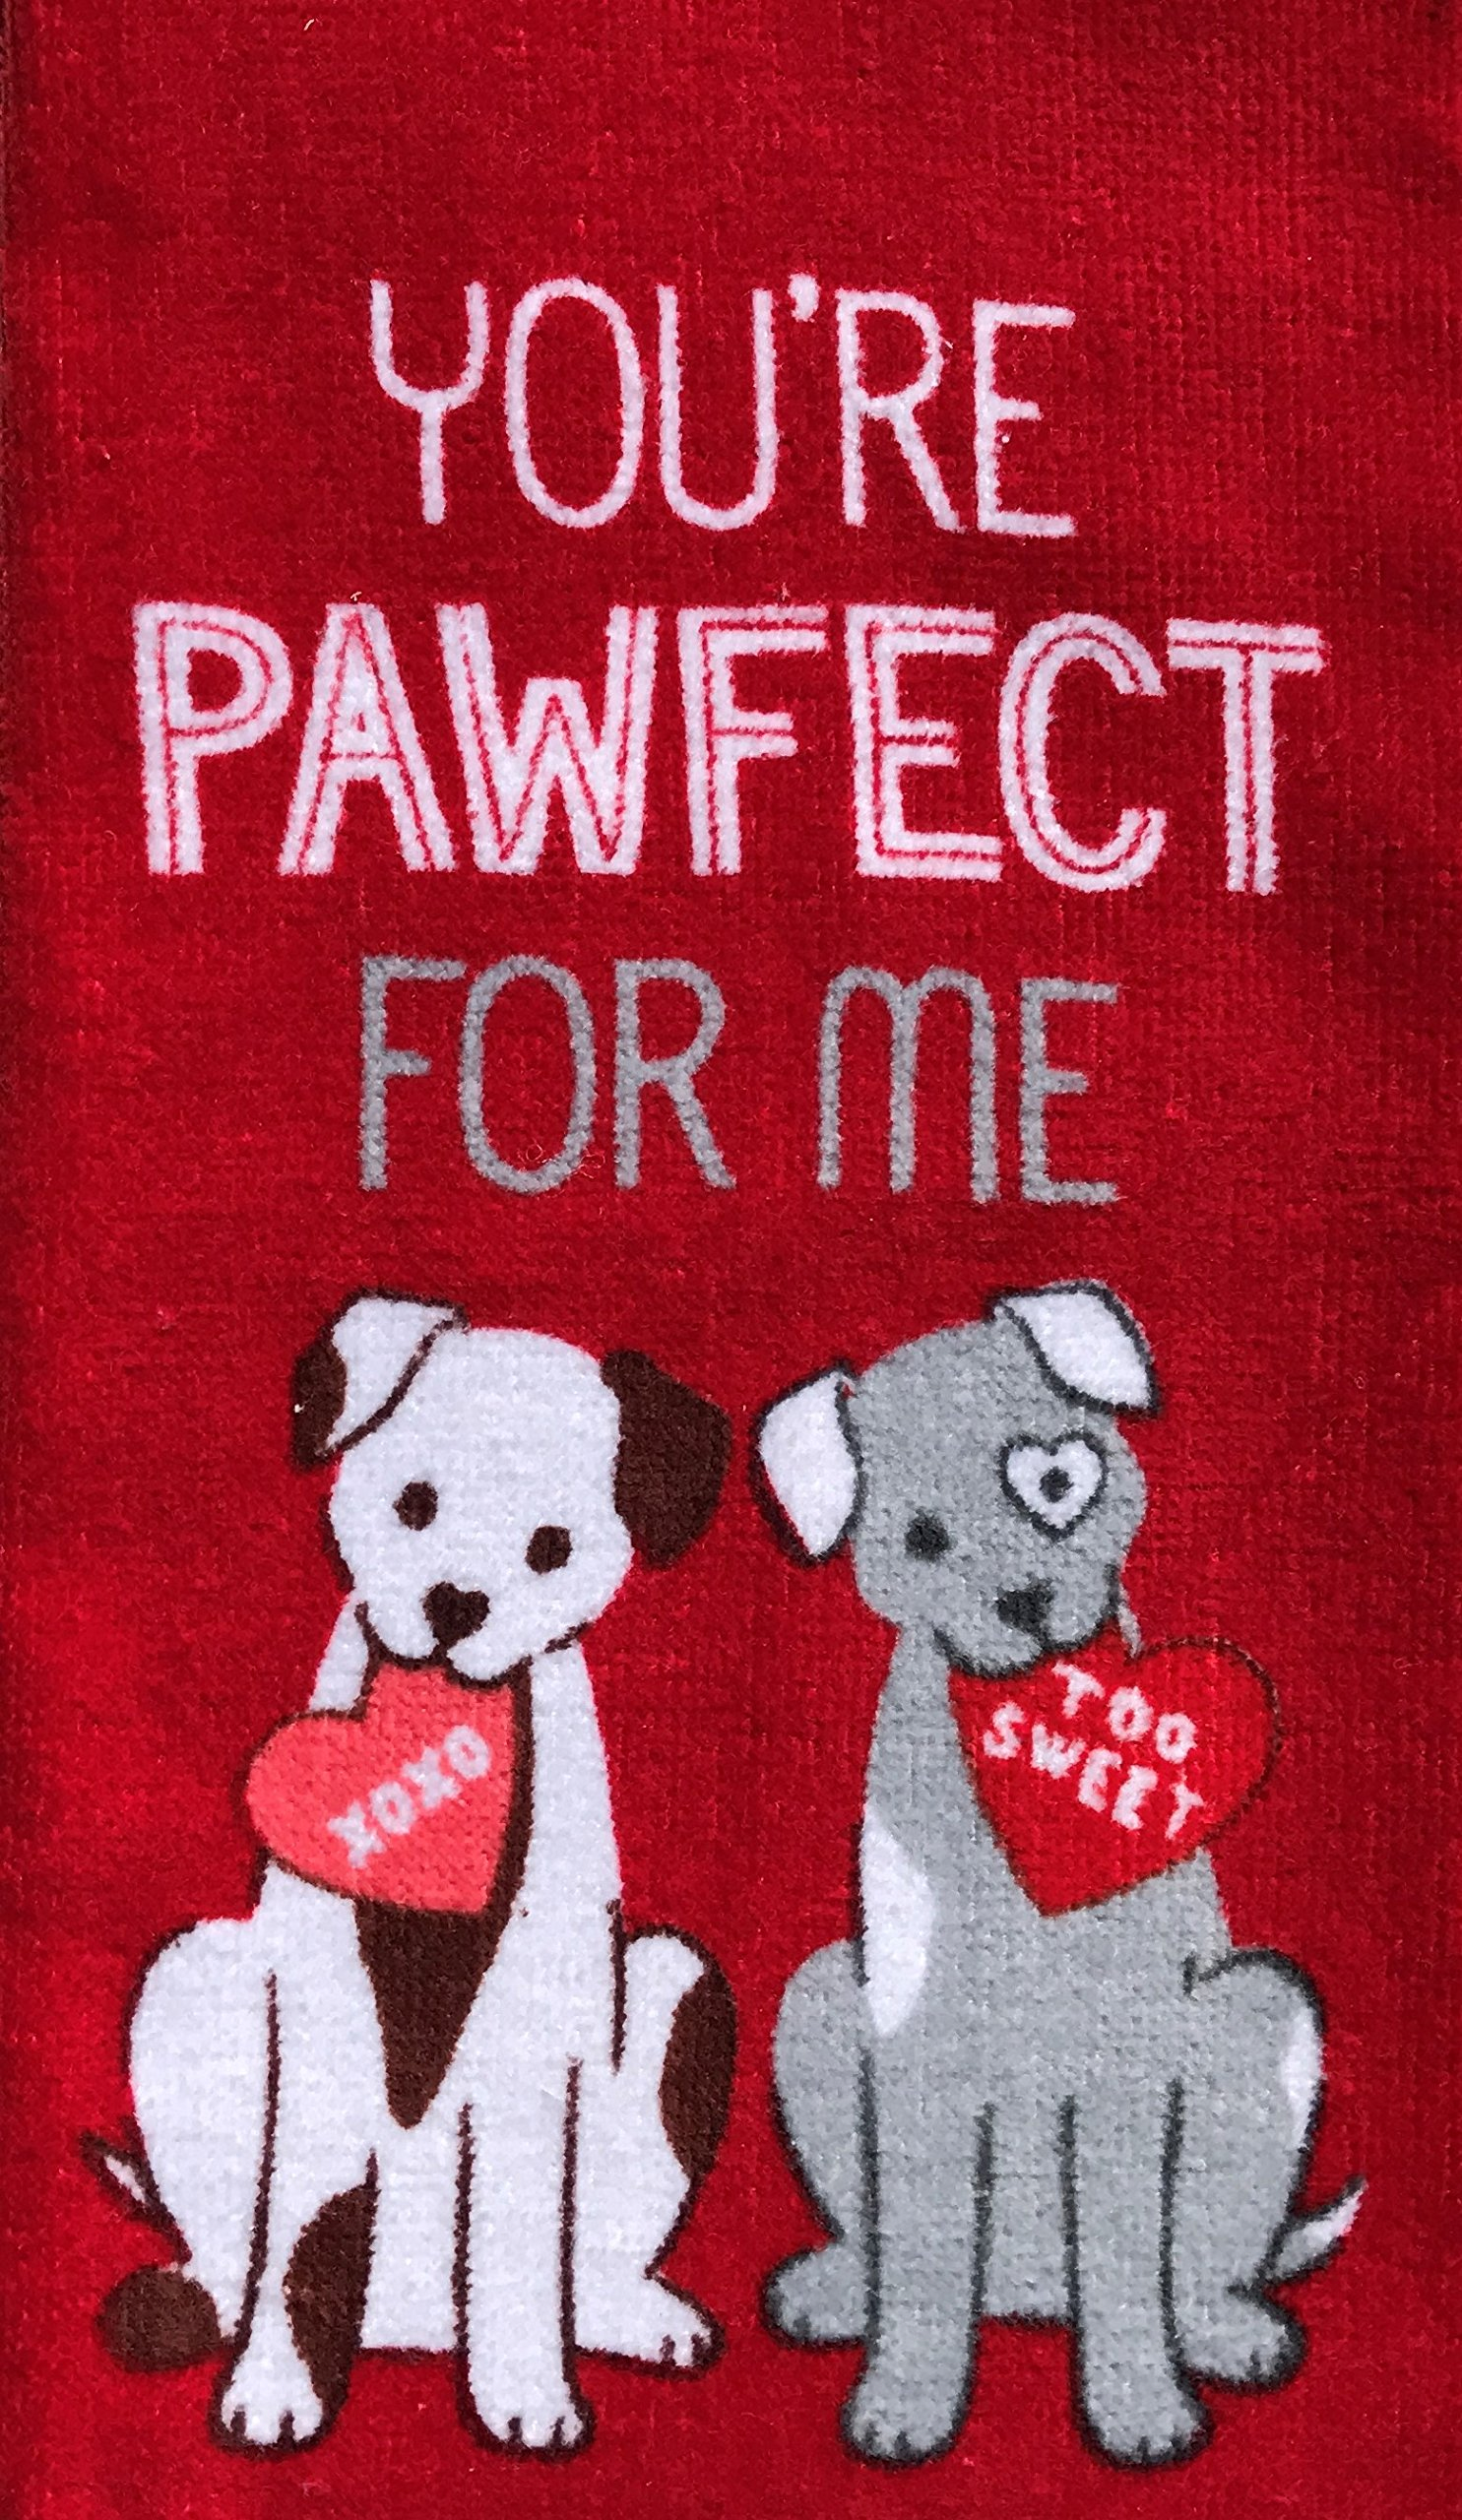 Love Be Mine, You're Pawfect For Me - Celebrate Valentine Cotton Kitchen Towels TWO Sets of (2)